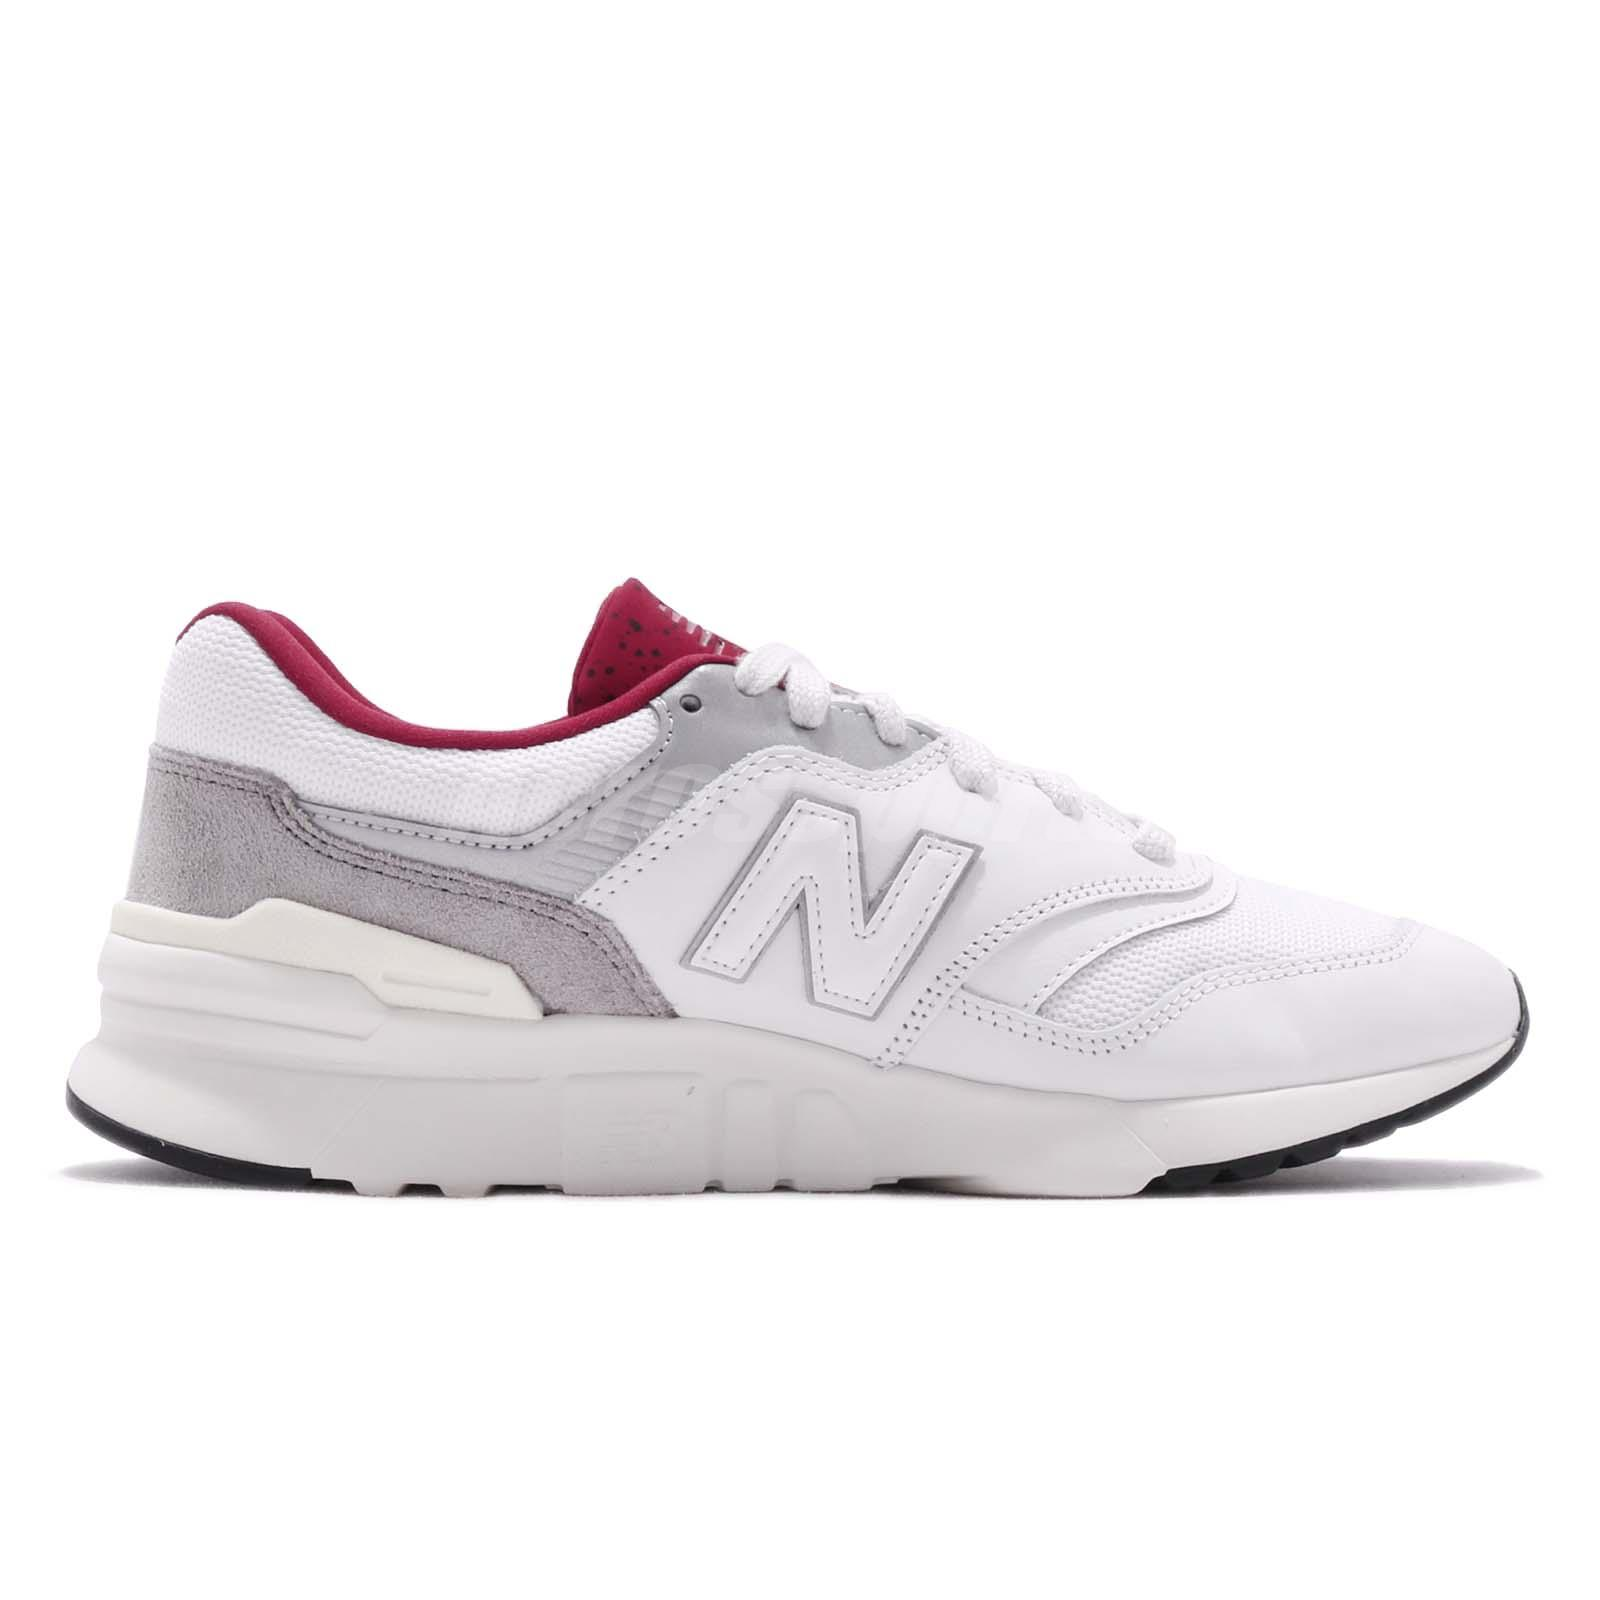 916c8e322a524 New Balance 997 White Grey Red Mens Classic Retro Running Shoes ...